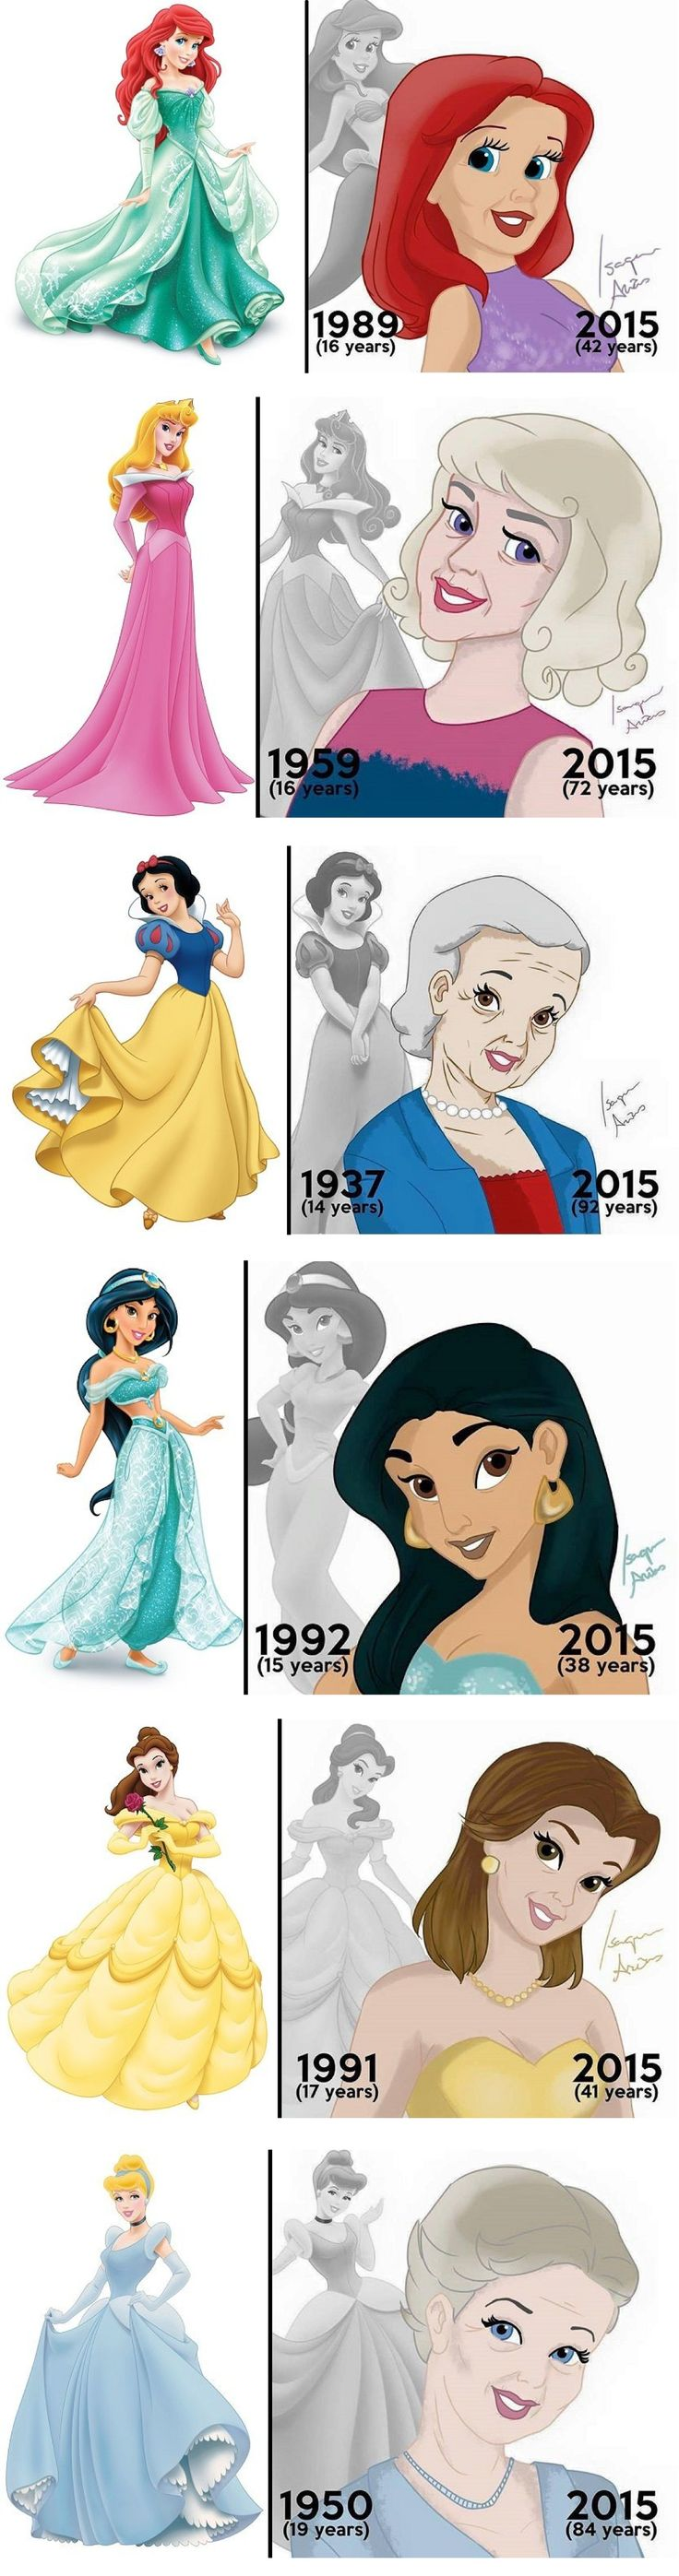 Disney kind of pisses me of. I mean look at their ages, they found love with older men at these ages I mean snow white was 14. And then people seem to think it's wrong for girls to find older men more attractive that the ones their age. But ever since we were younger that's all we have seen through these movies. Rapunzel was 16 and flyn rider was said to be about 27.